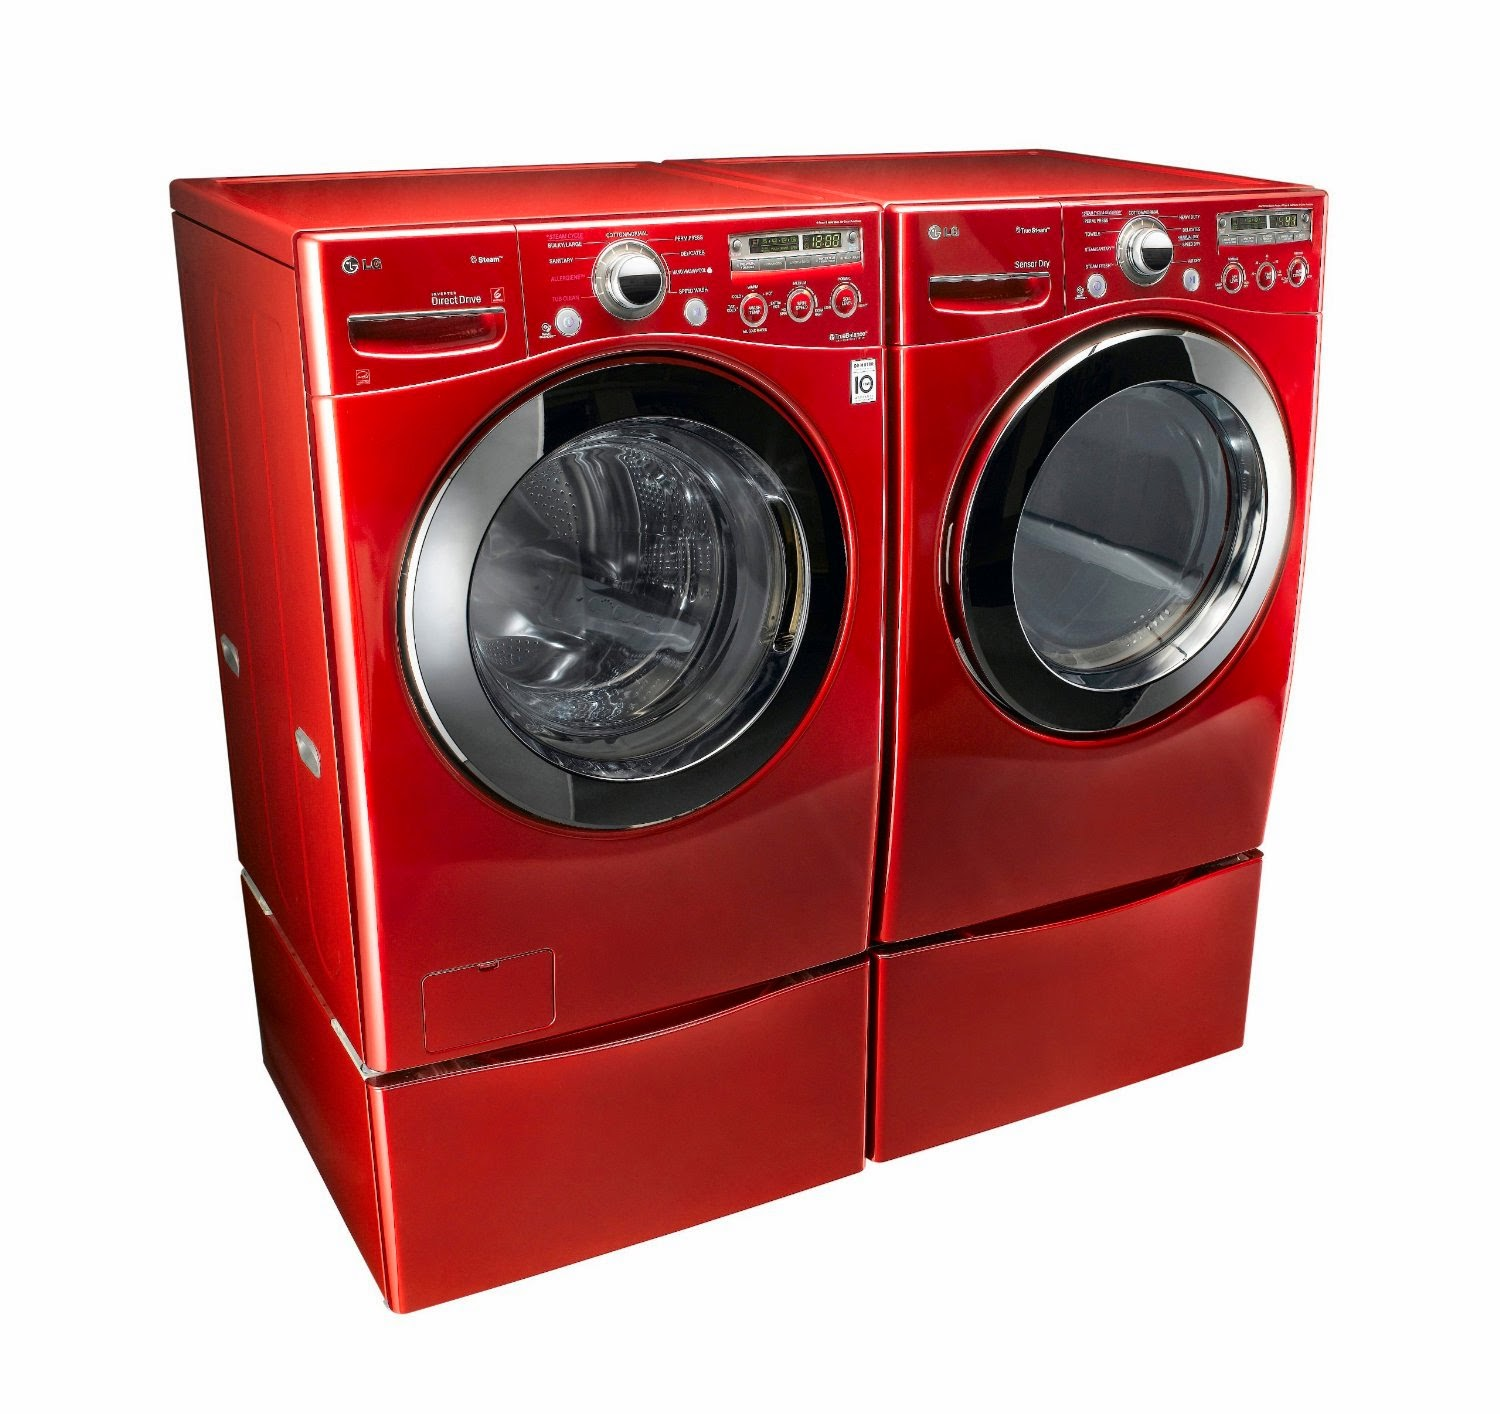 Washer Reviews